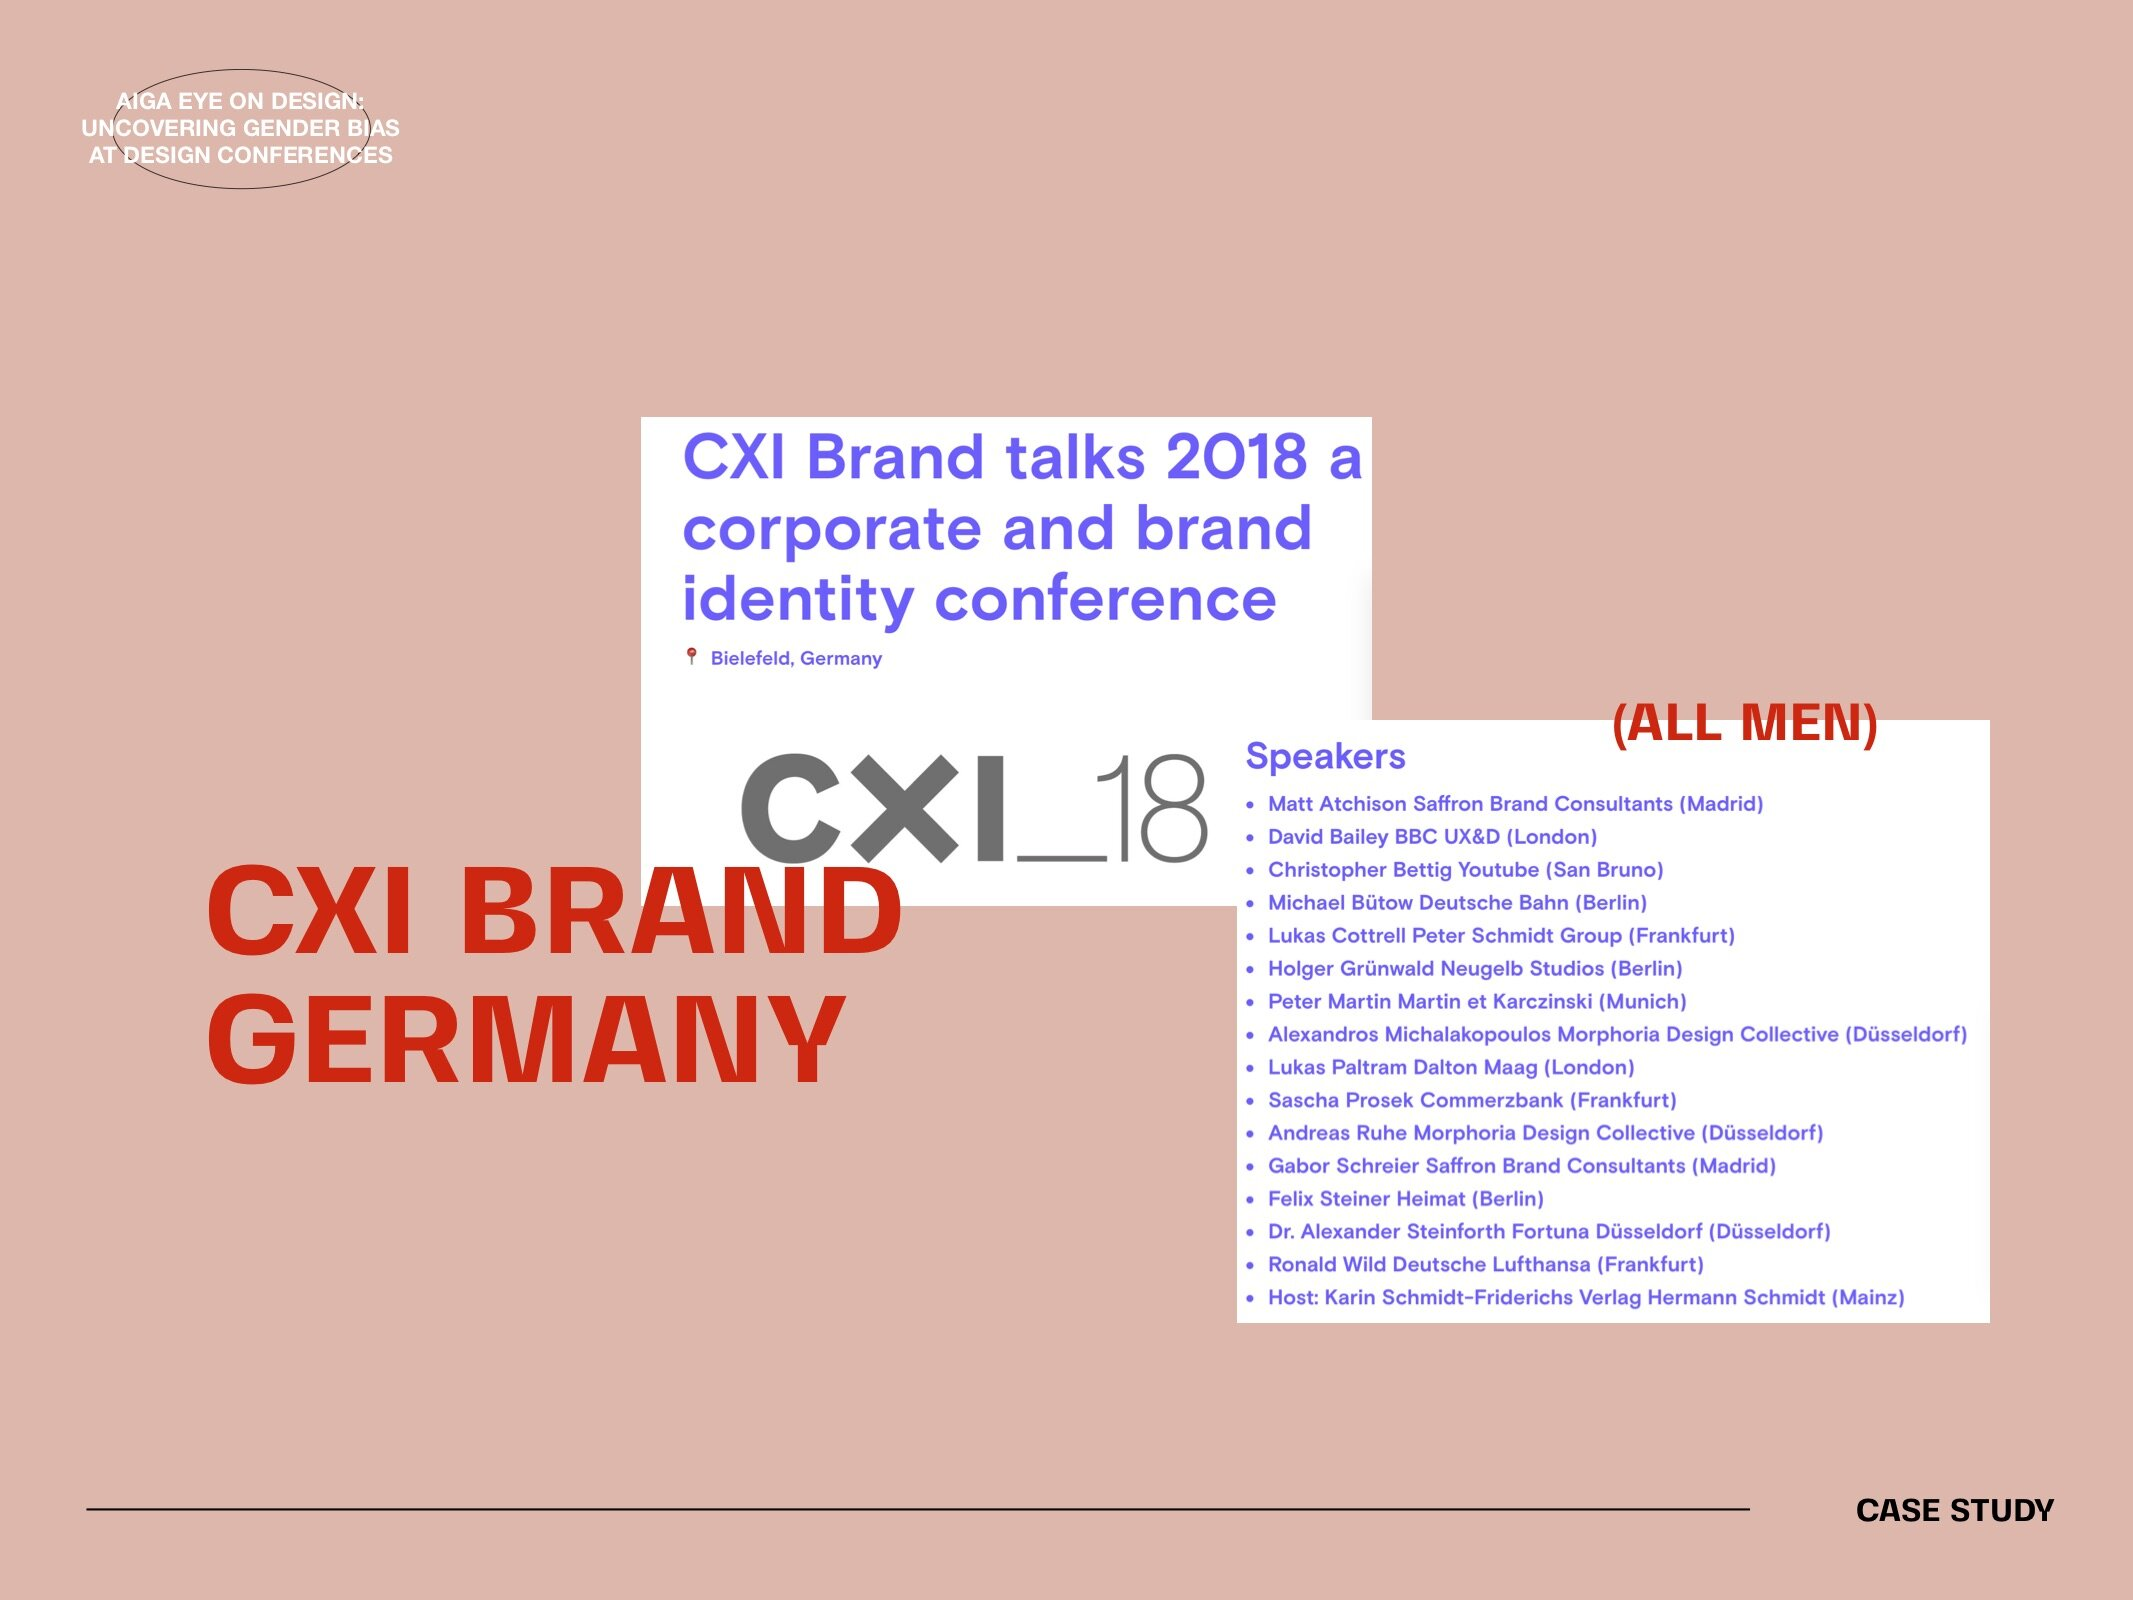 Next we have the CXI Brand and Indentity conference in Germany, with a sad total of ZERO female presenters. The design world took notice of this glaring lack of representation at these two conferences; between the most experimental conference in Europe and the most corporate one, where are women supposed to fit? This all ties into the studies we have looked at where women simply aren't represented at all, making the default for all our universal systems male.